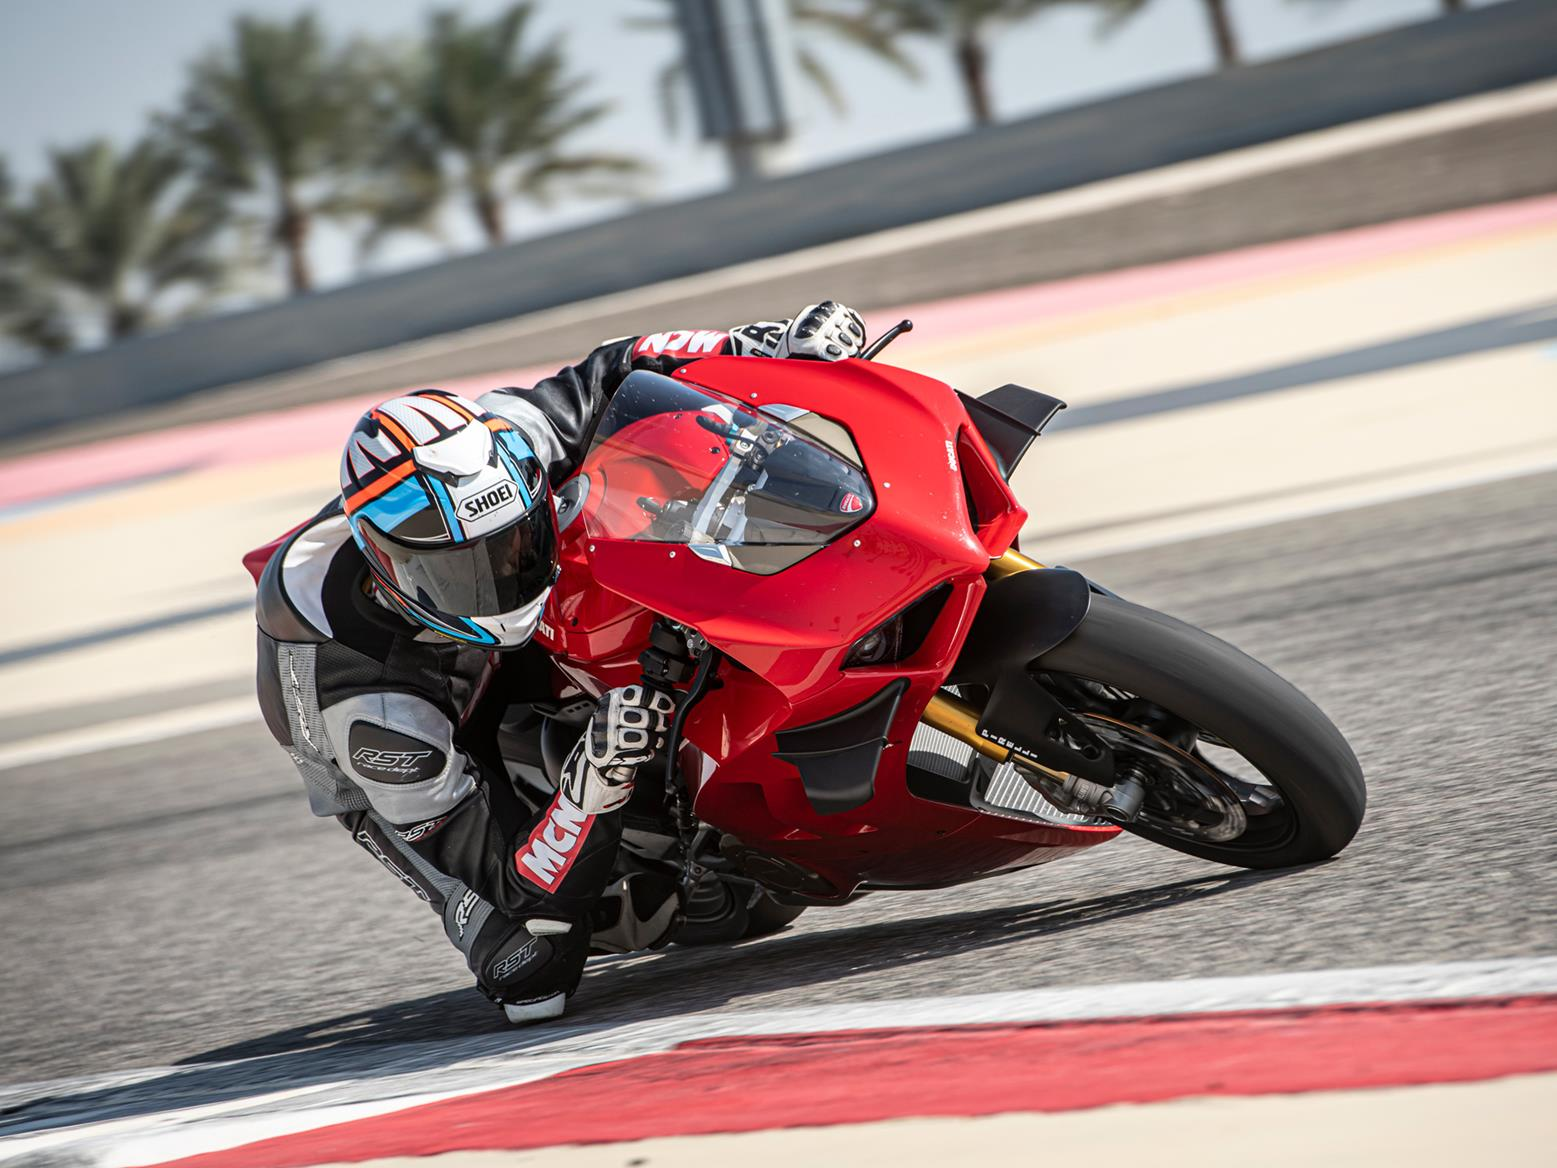 DUCATI PANIGALE V4S (2020-on) Review